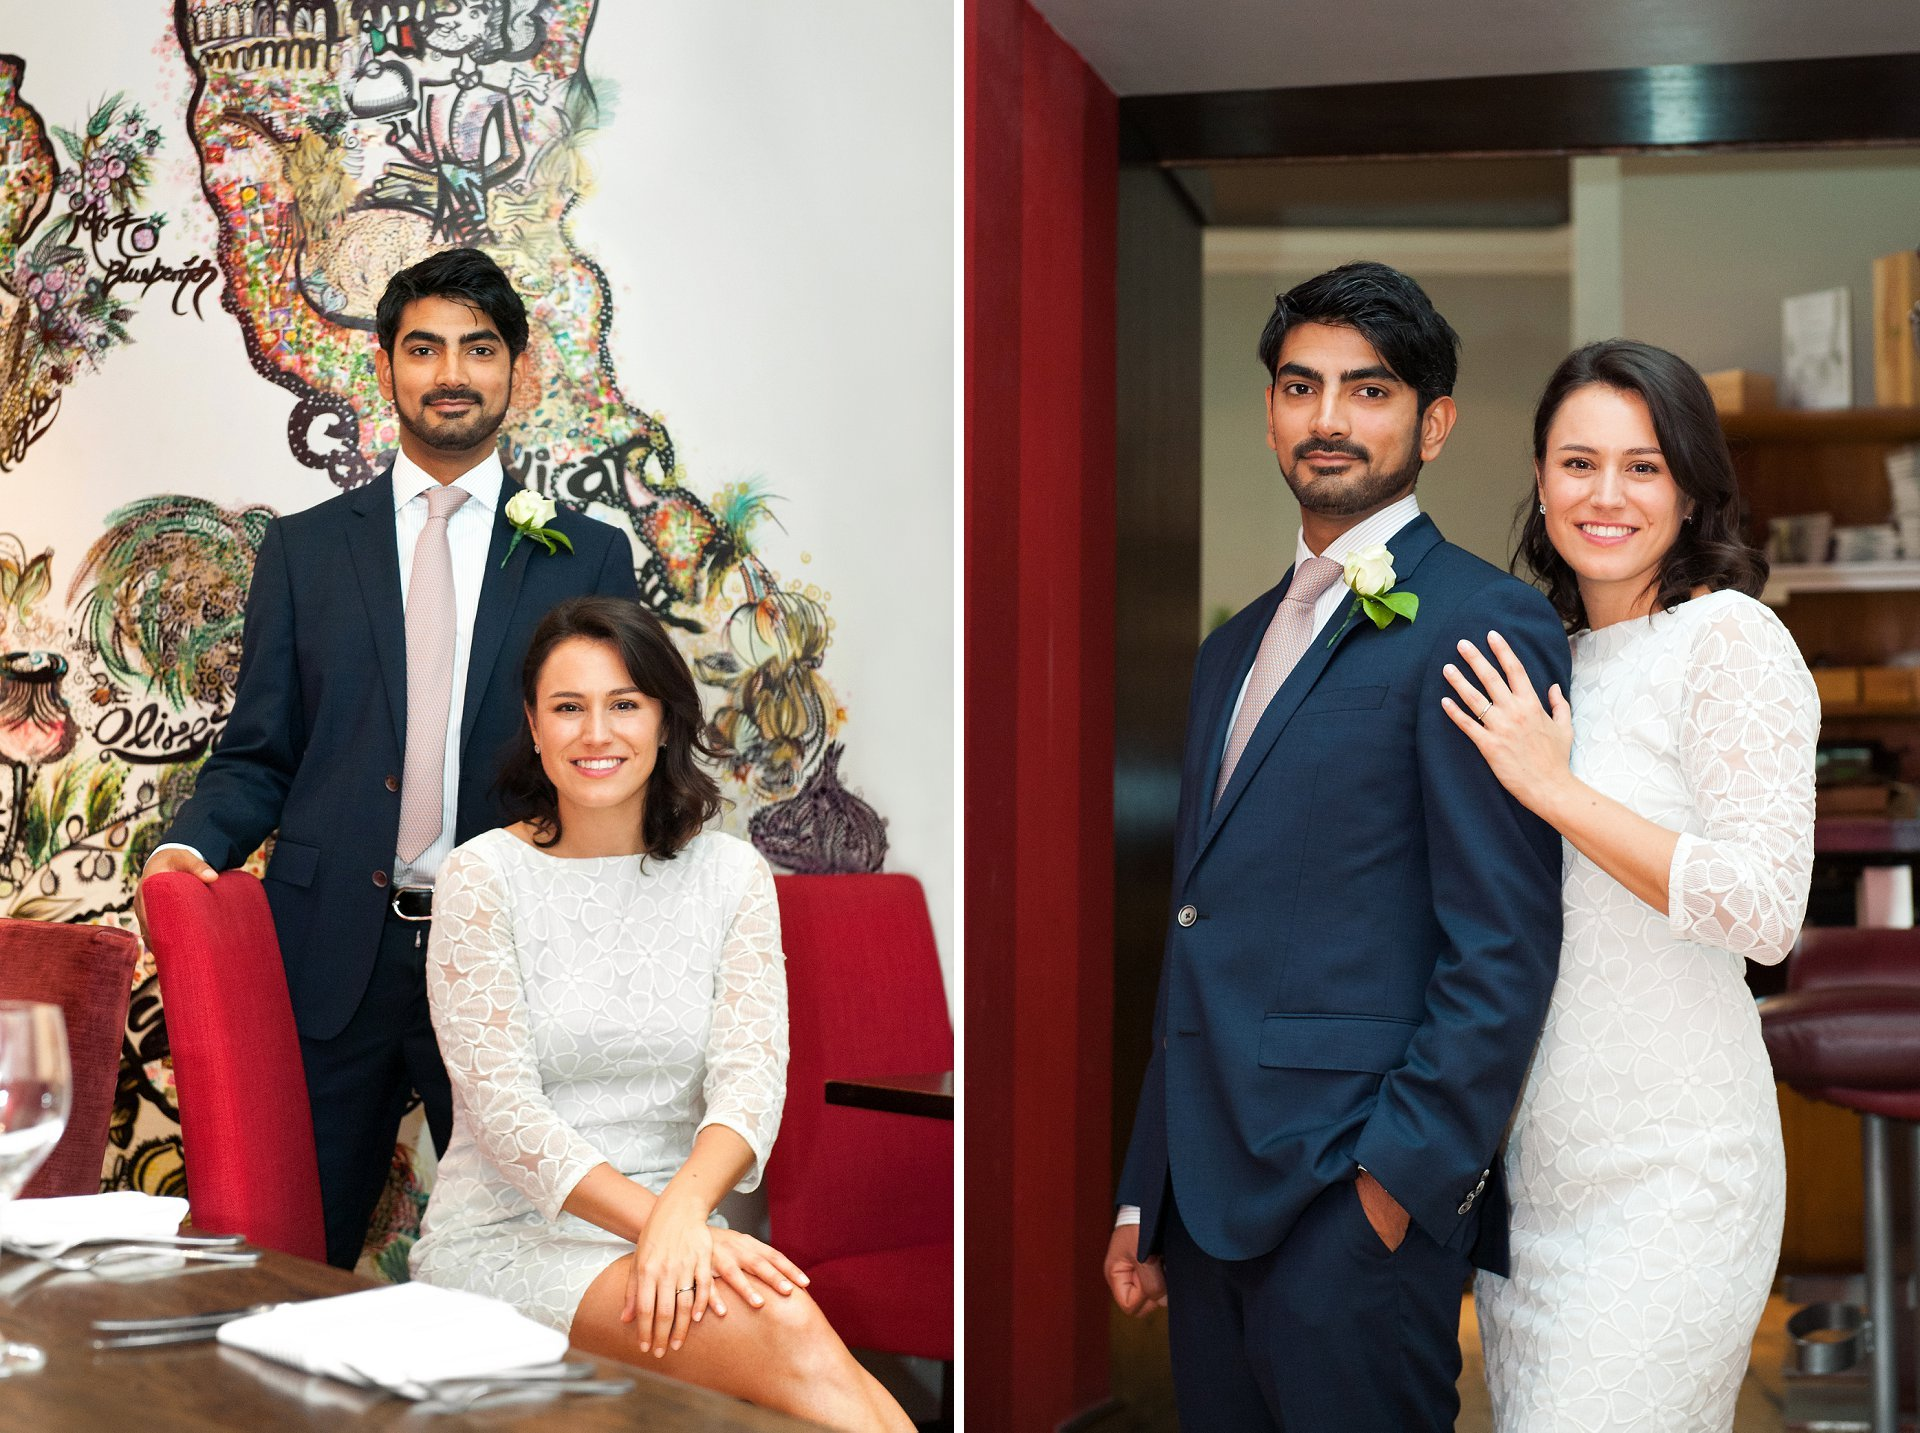 Mayfair wedding - the bride and groom married at Mayfair Library at nearby South Audley Street before makign their way to Cartizze in the pouring rain for a couple of portraits to mark their wedding